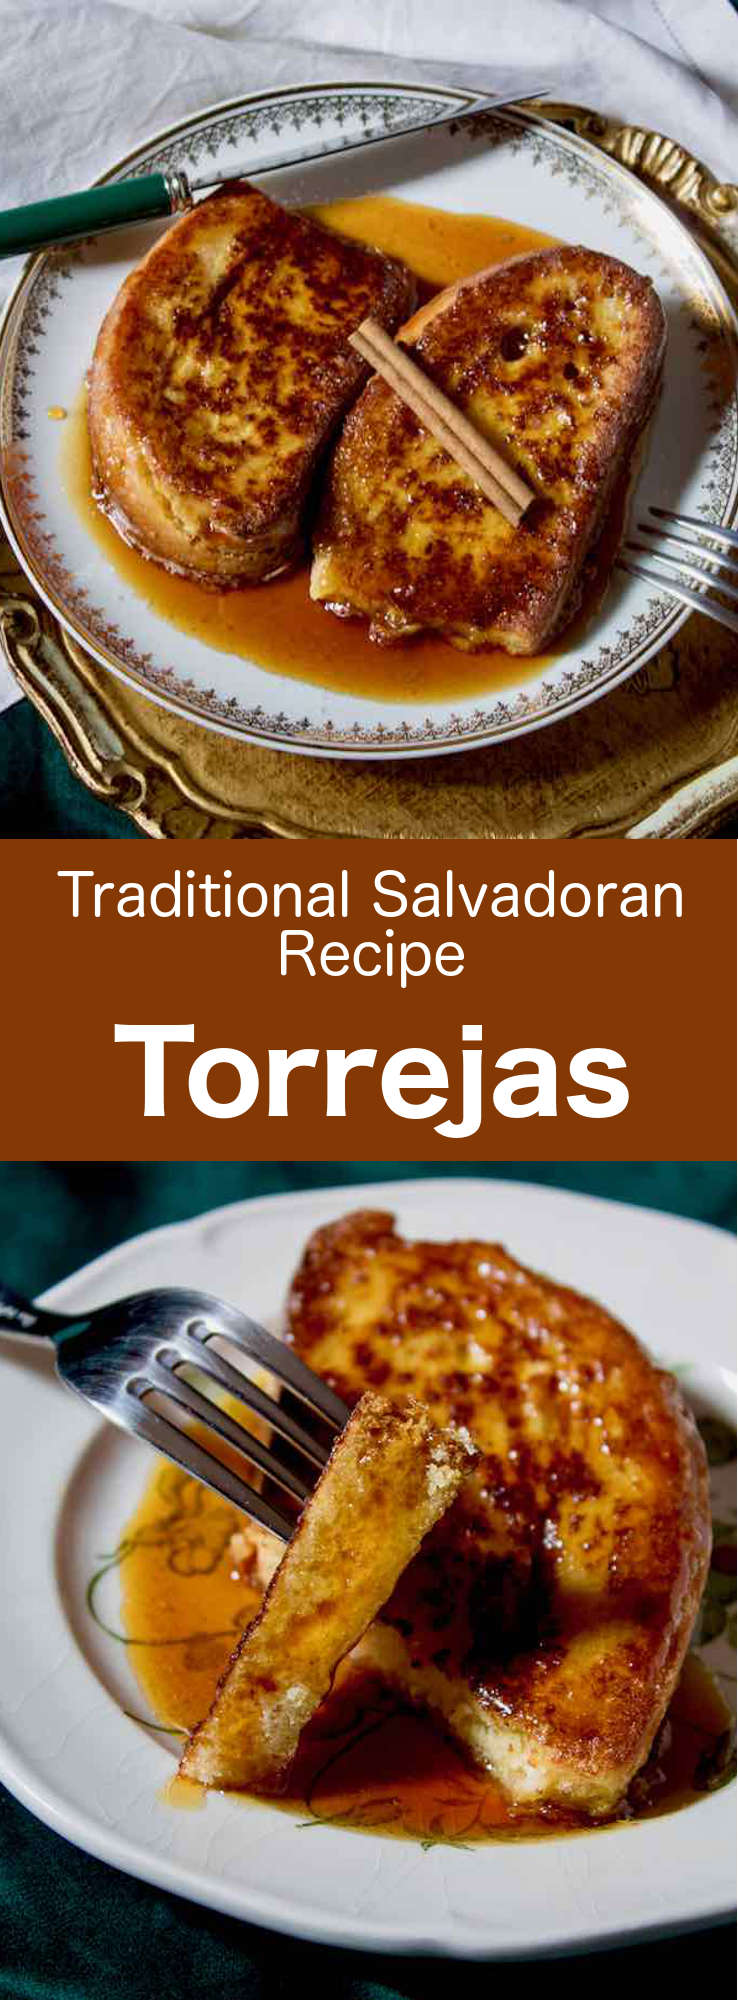 Torrejas are the delicious Latin American version of the French toast. They are traditionally served with panela syrup and various spices. #CentralAmericanCuisine #CentralAmericanRecipe #SalvadoranCuisine #SalvadoranRecipe #WorldCuisine #196flavors